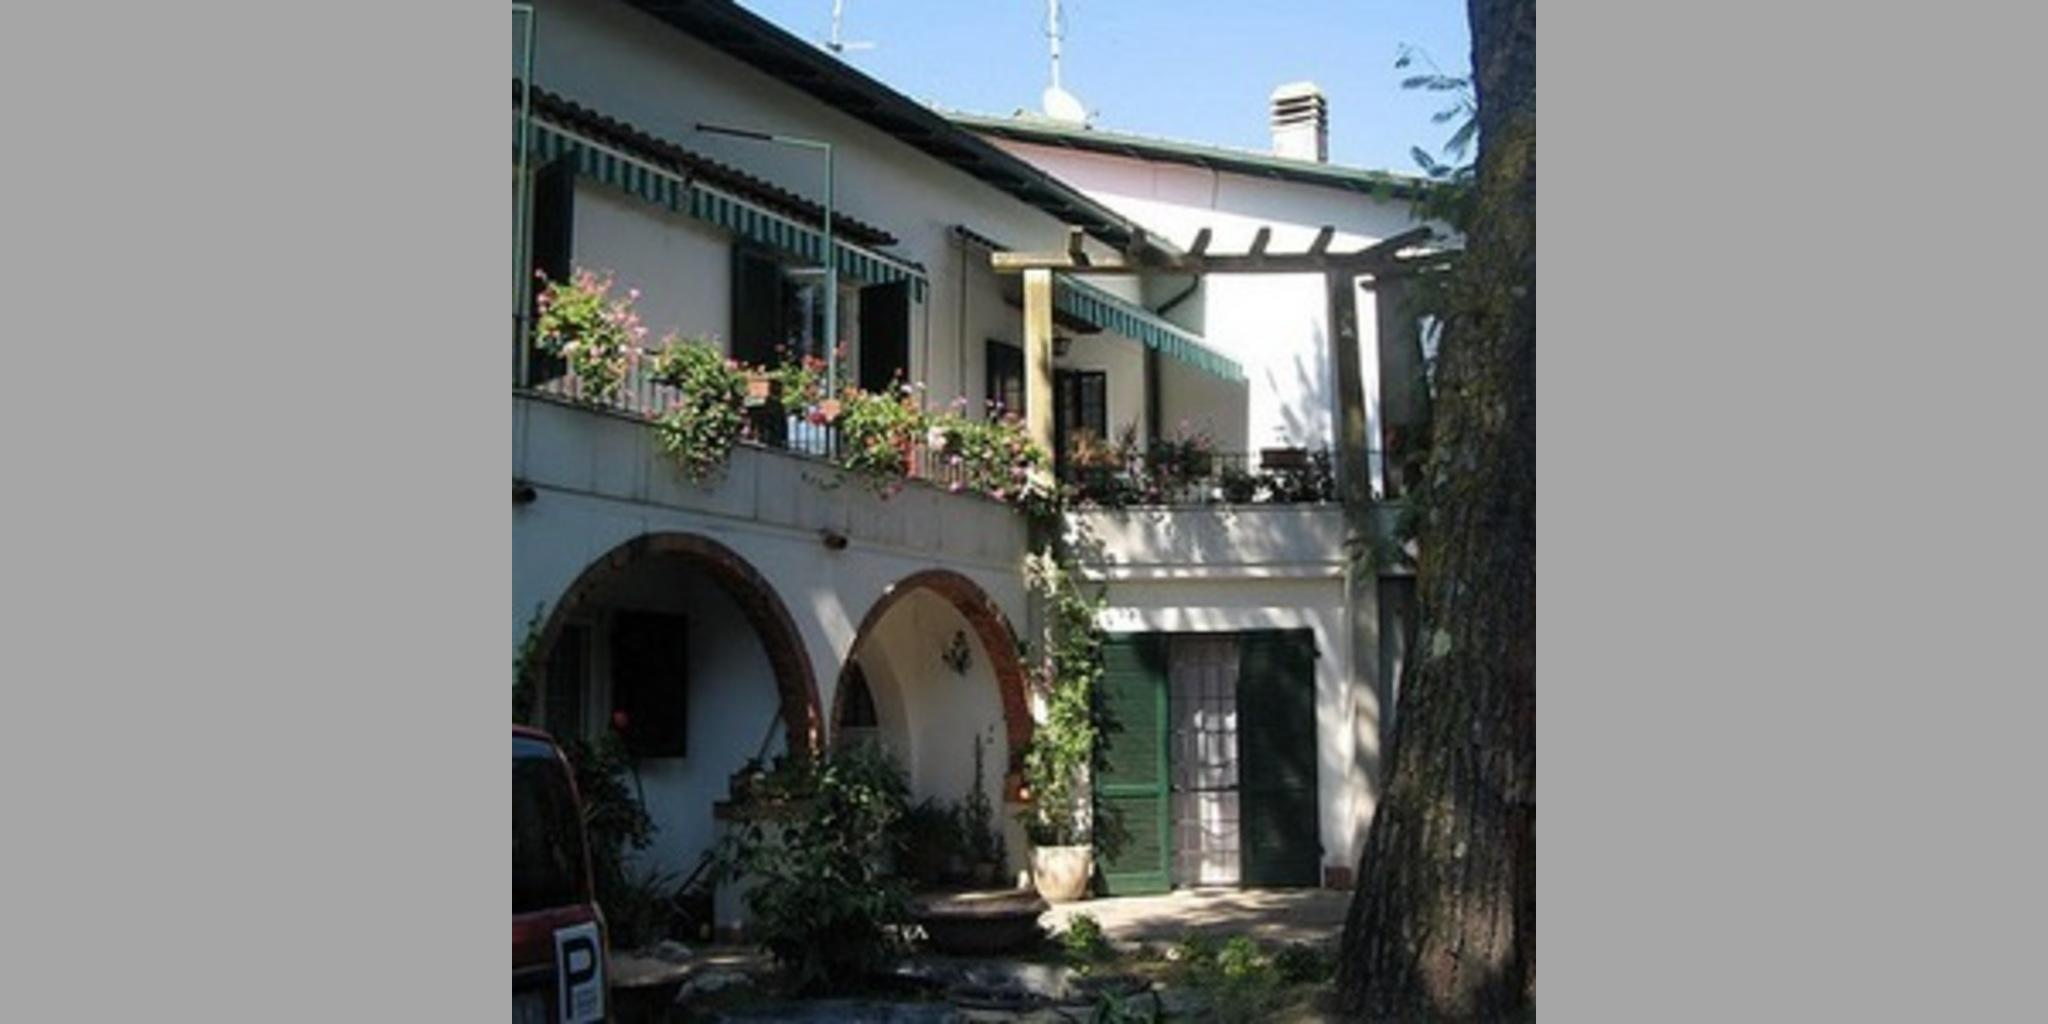 Bed & Breakfast Carrara - Carrara